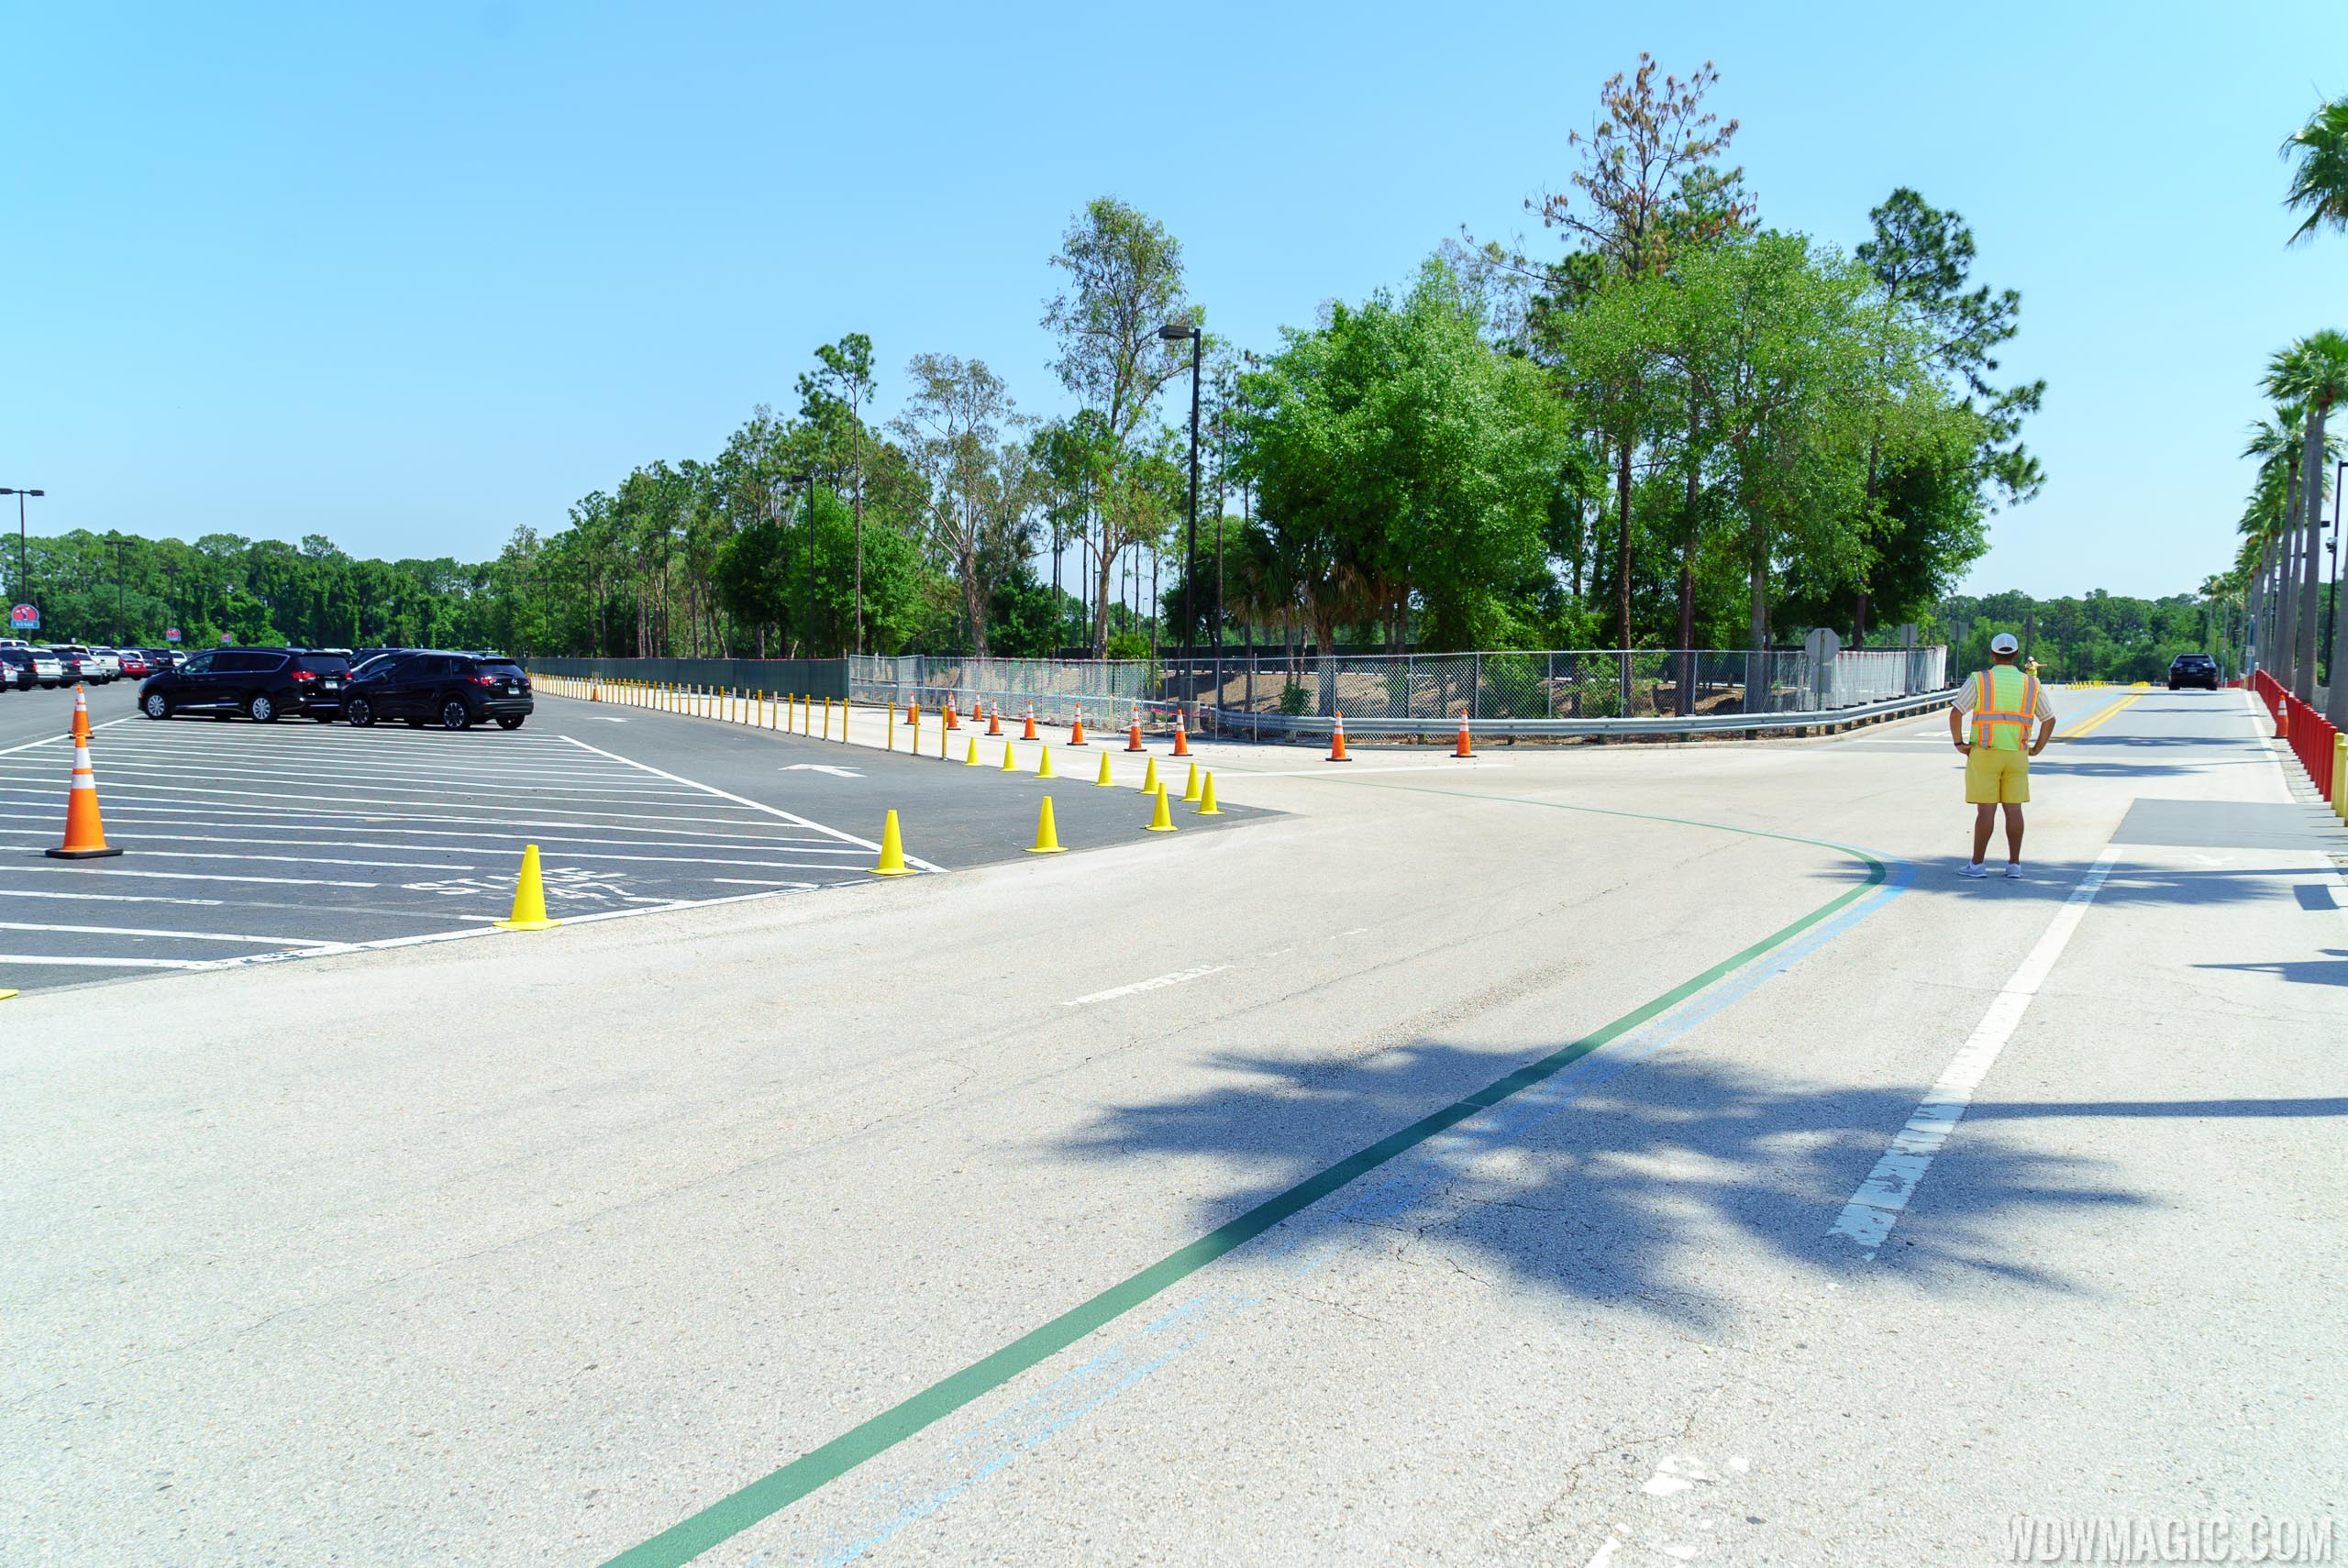 Parking Lot demolition at Disney's Hollywood Studios